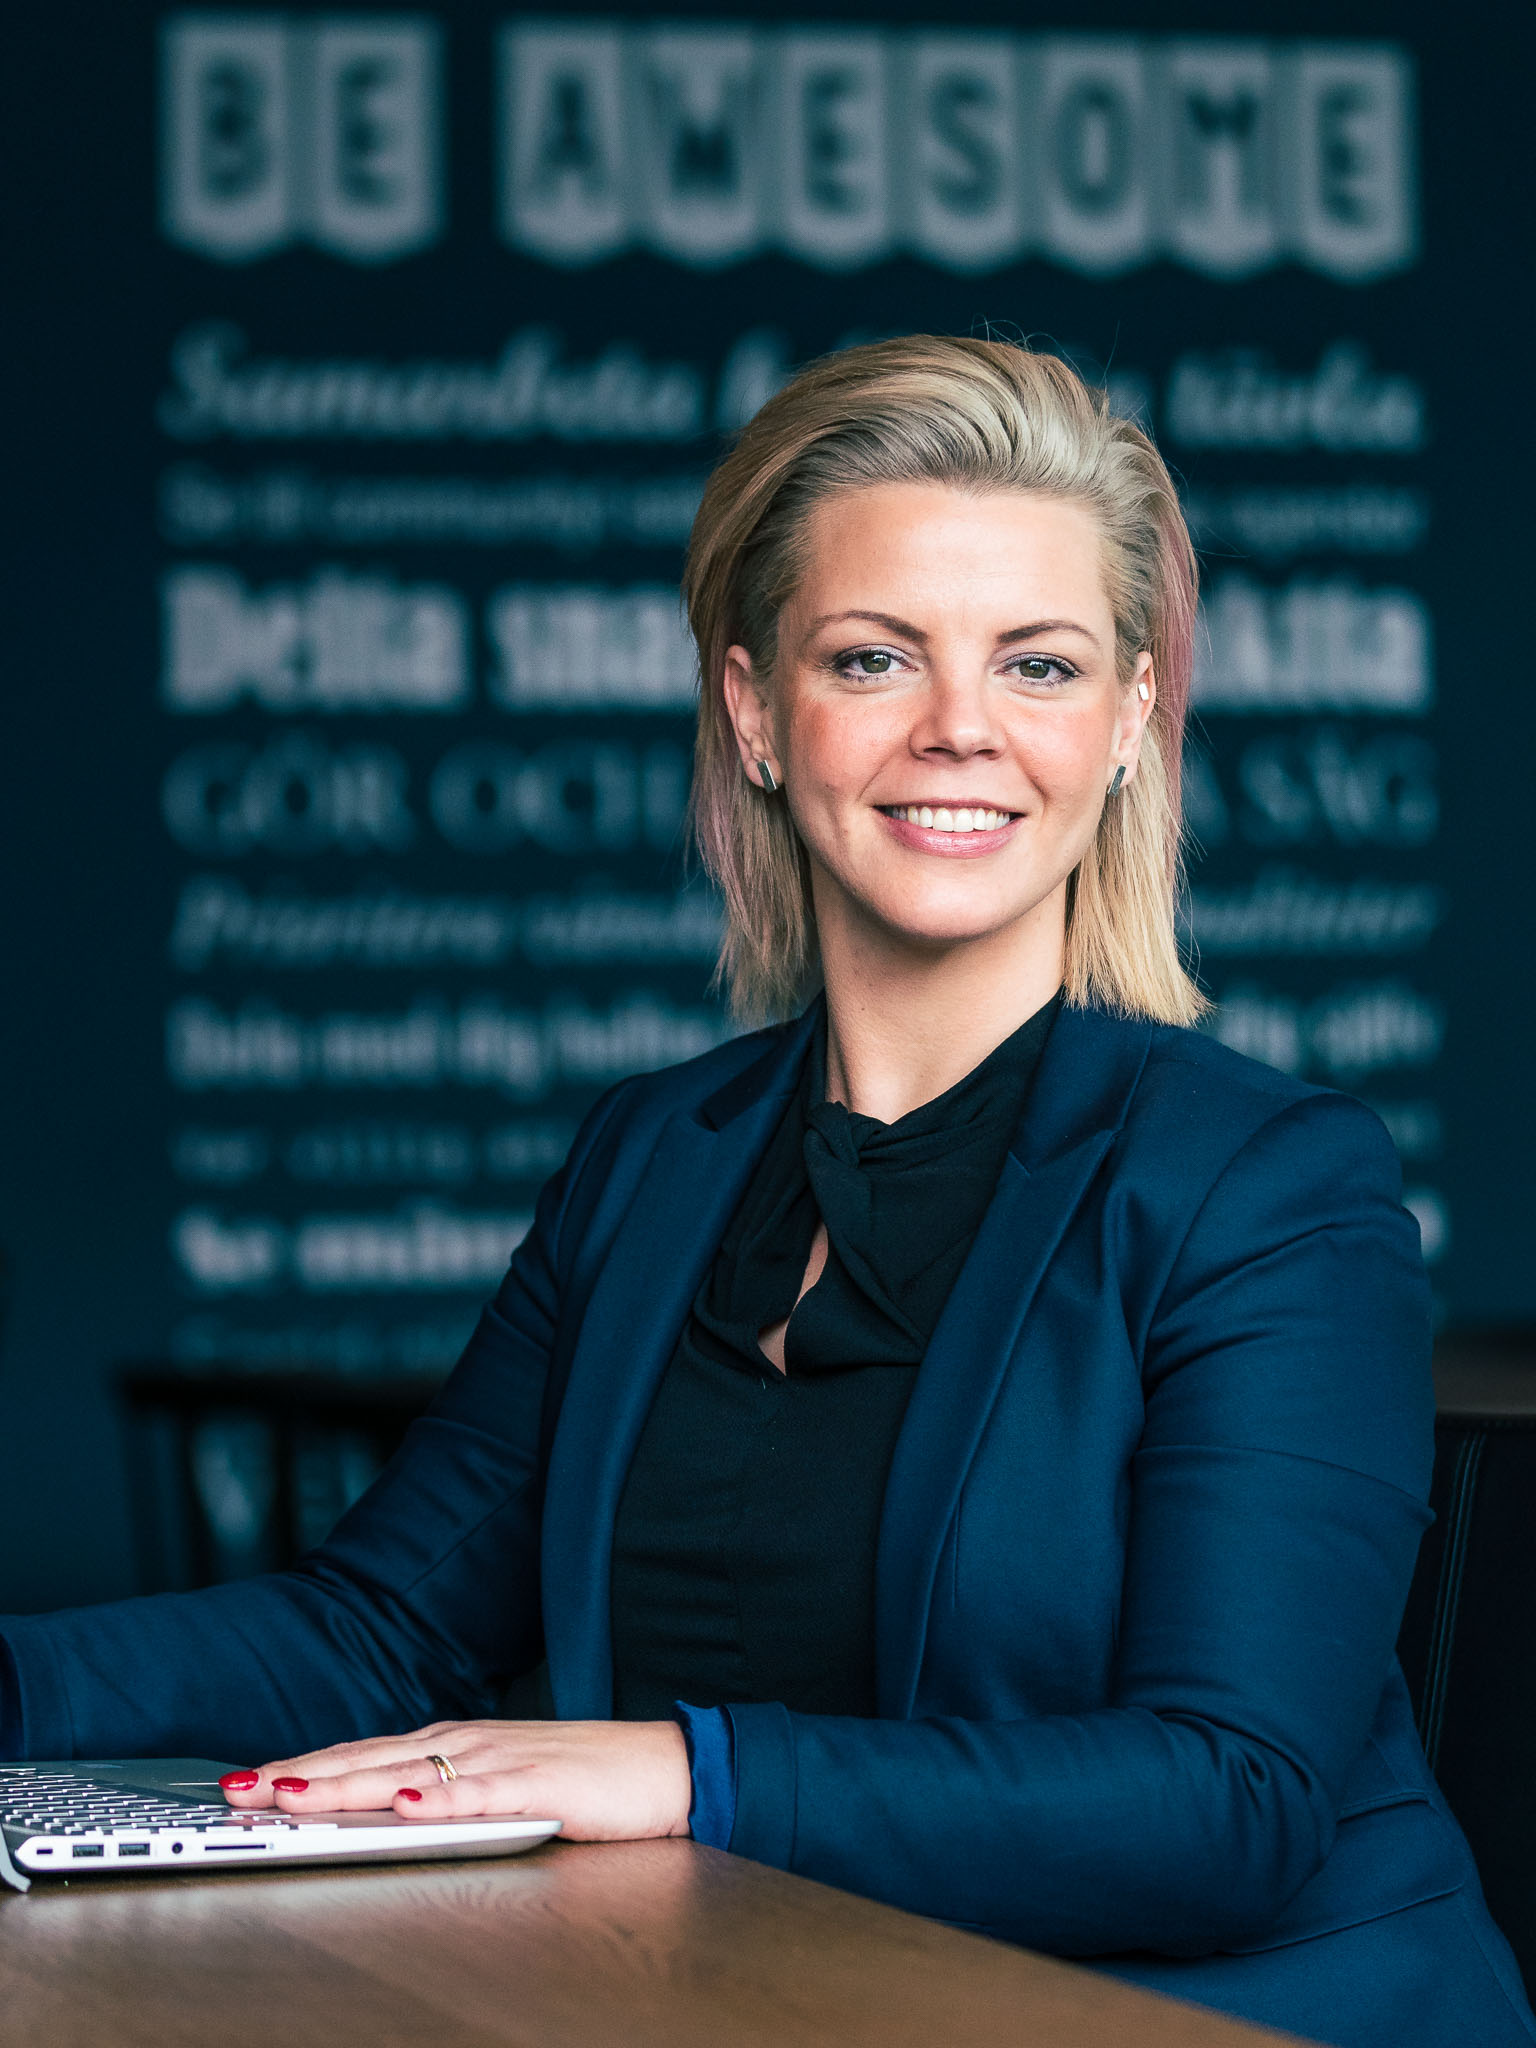 jonna-nyberg-business-portrait-corporate-headshot-retorikverkstaden-skovde-sweden